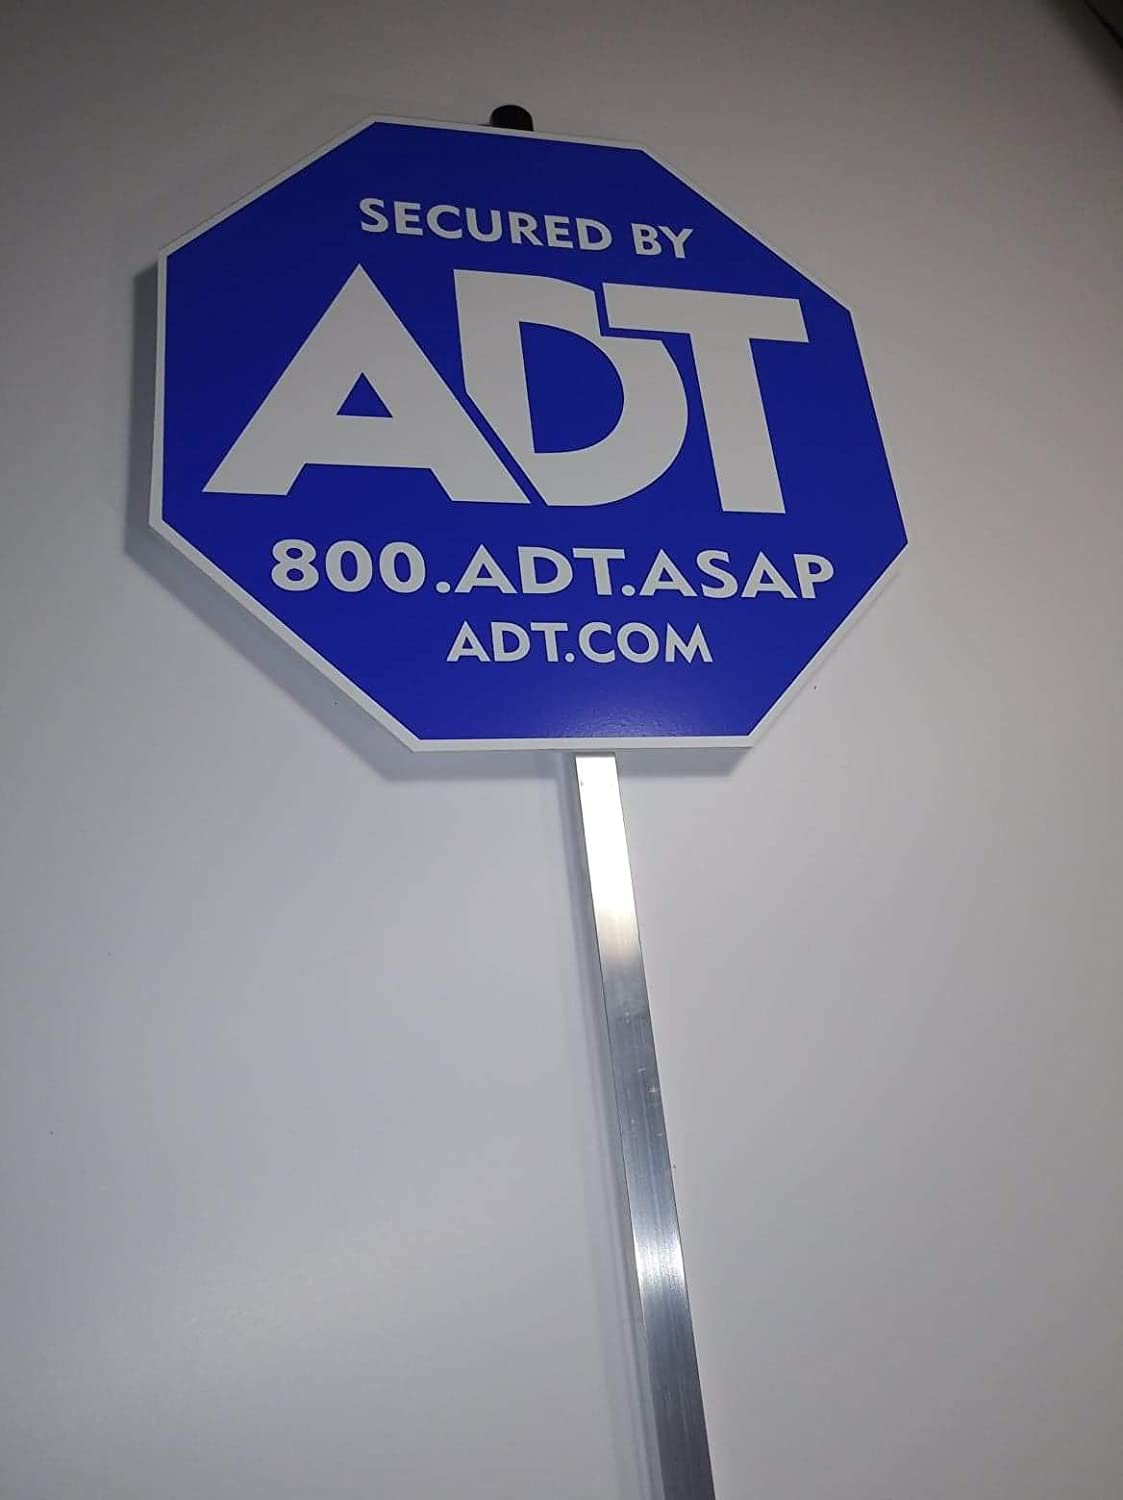 Security ADT Yard Signs 10 x 10 with Aluminum Post 36.